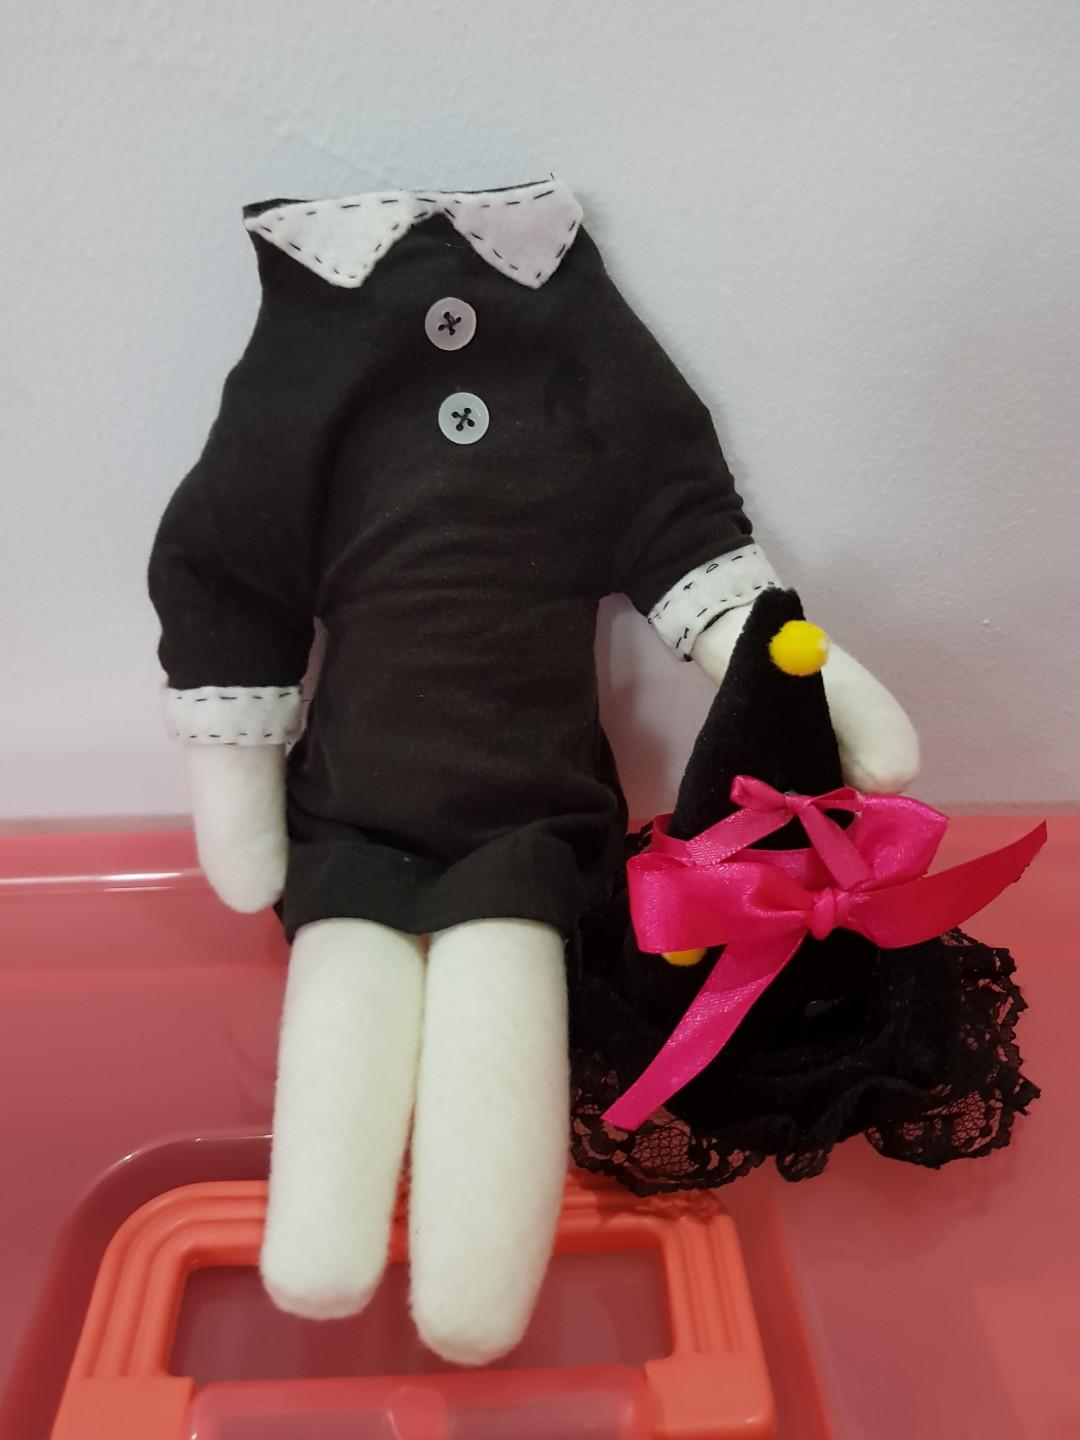 Wednesday Addams' headless doll